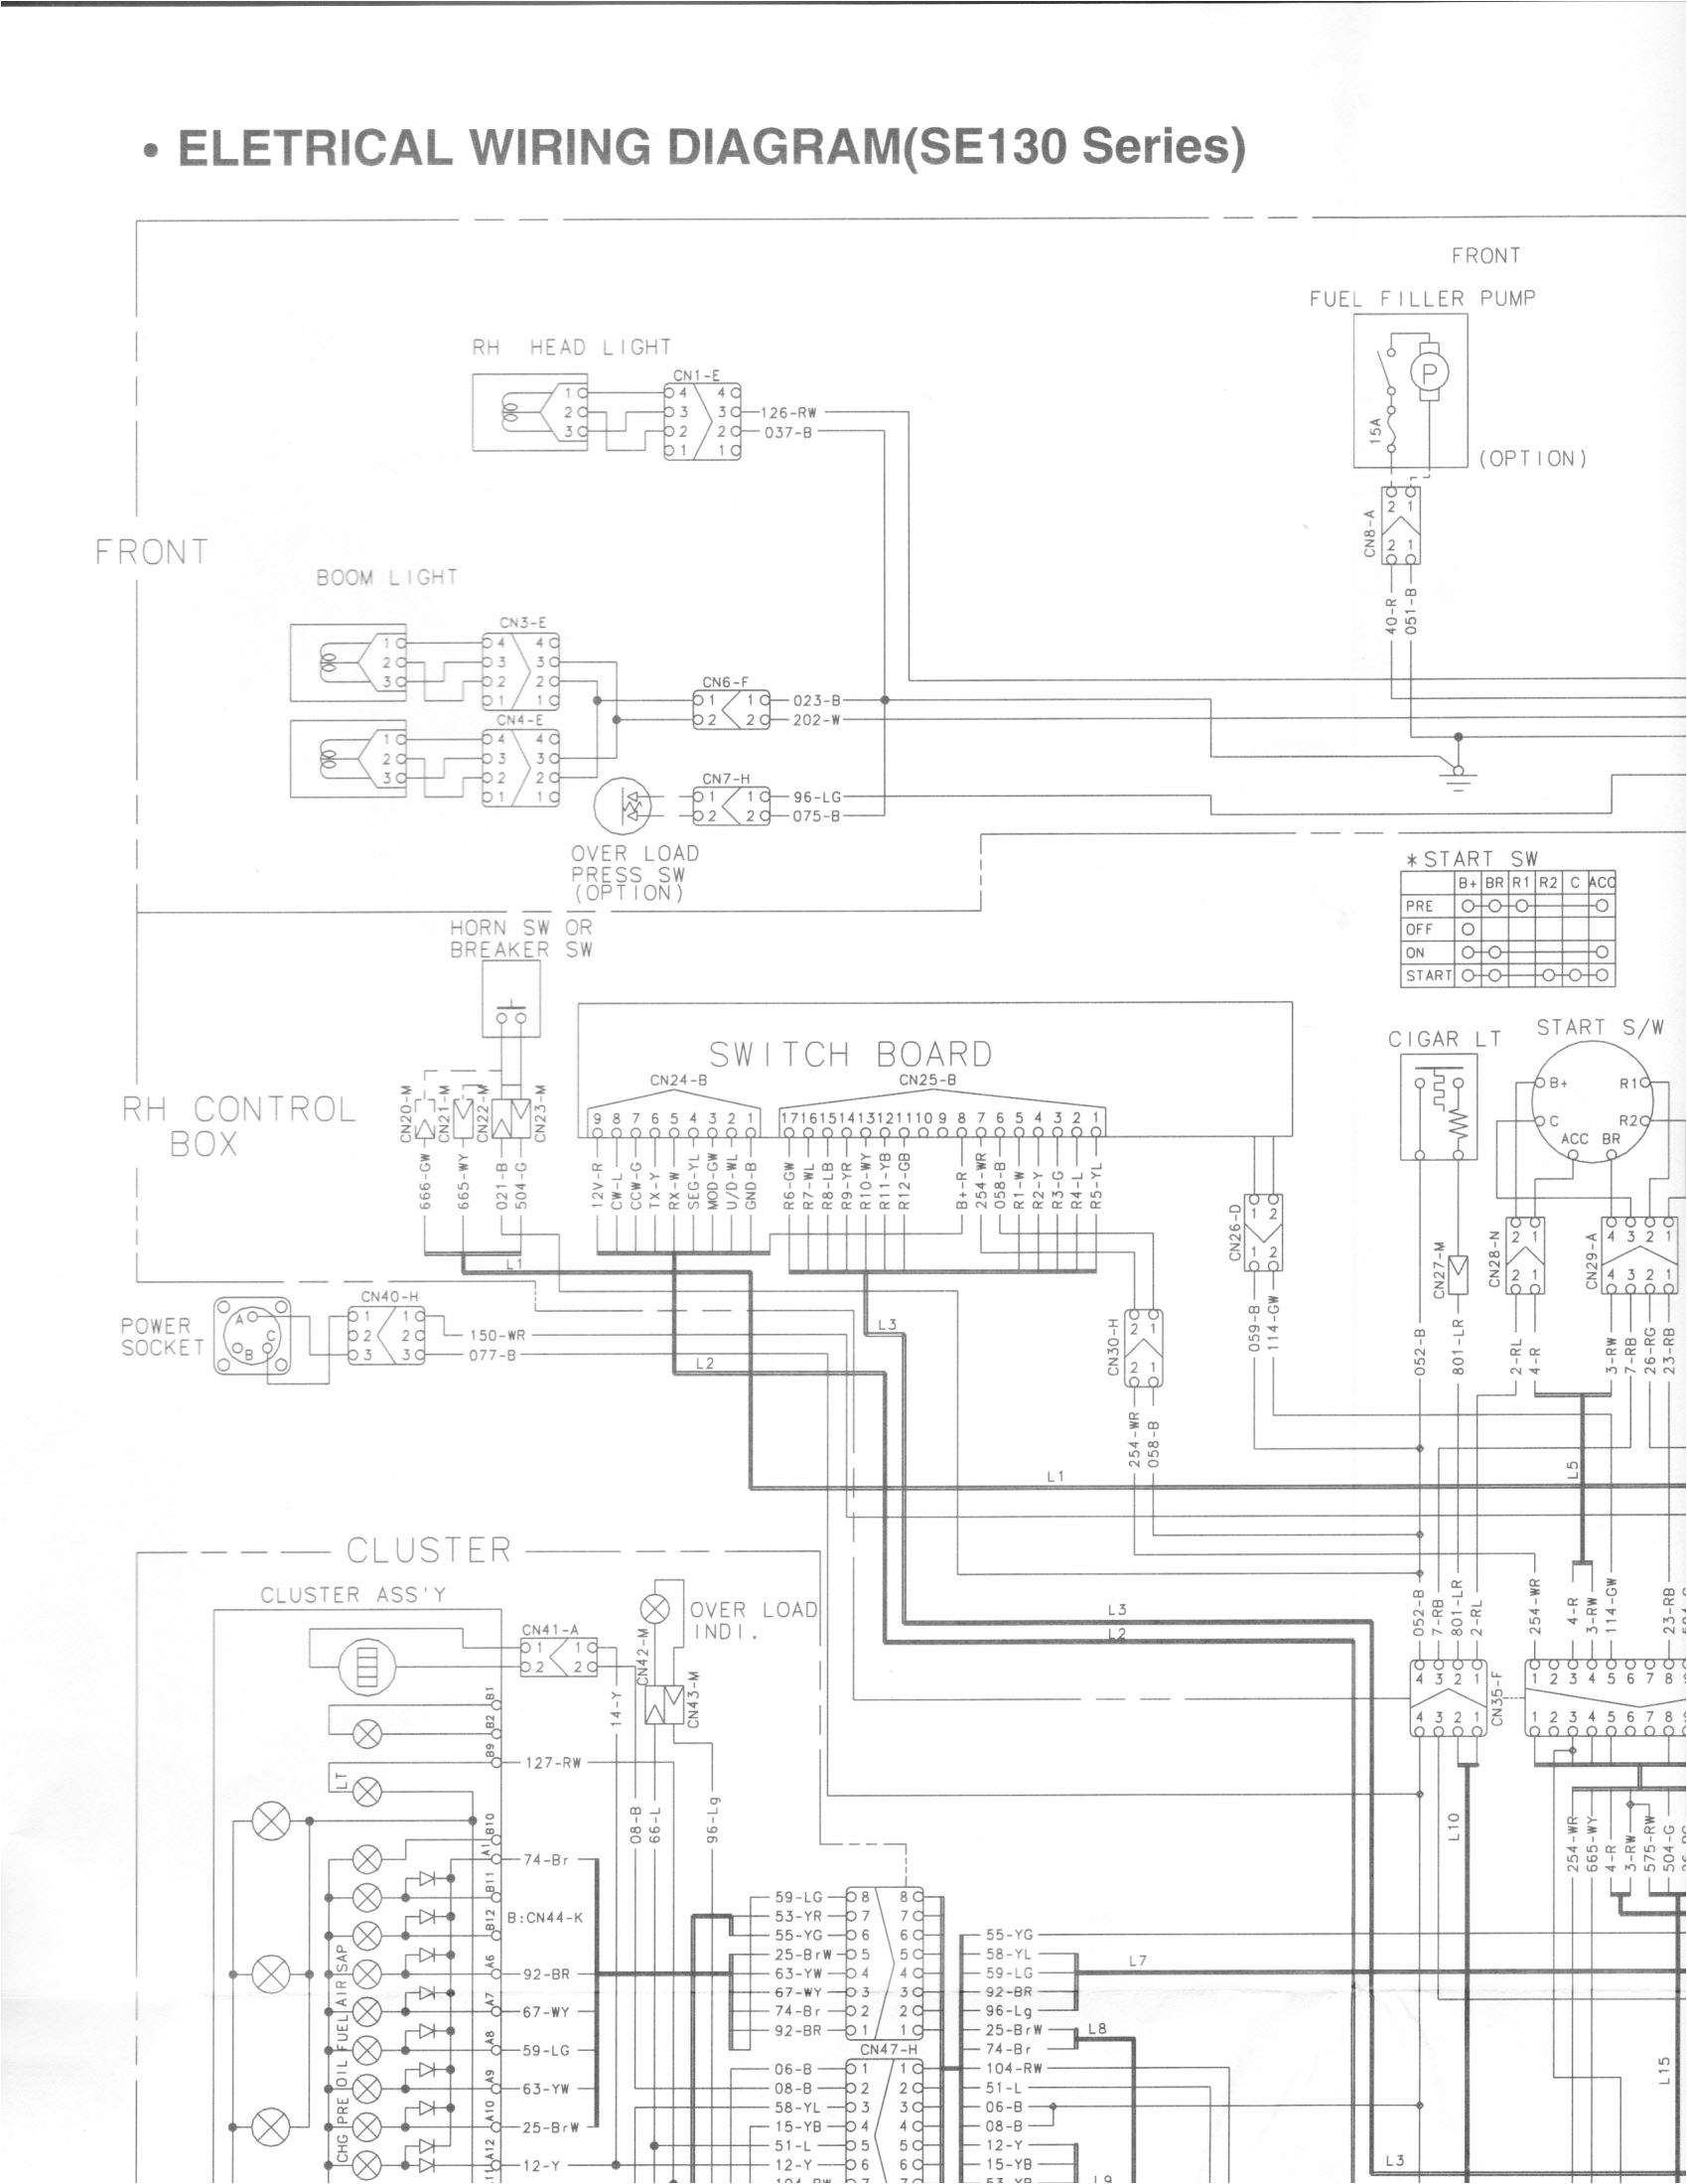 hello i do have a good schematic it is just extra large i scanned it in sections to see if you can piece together at you site